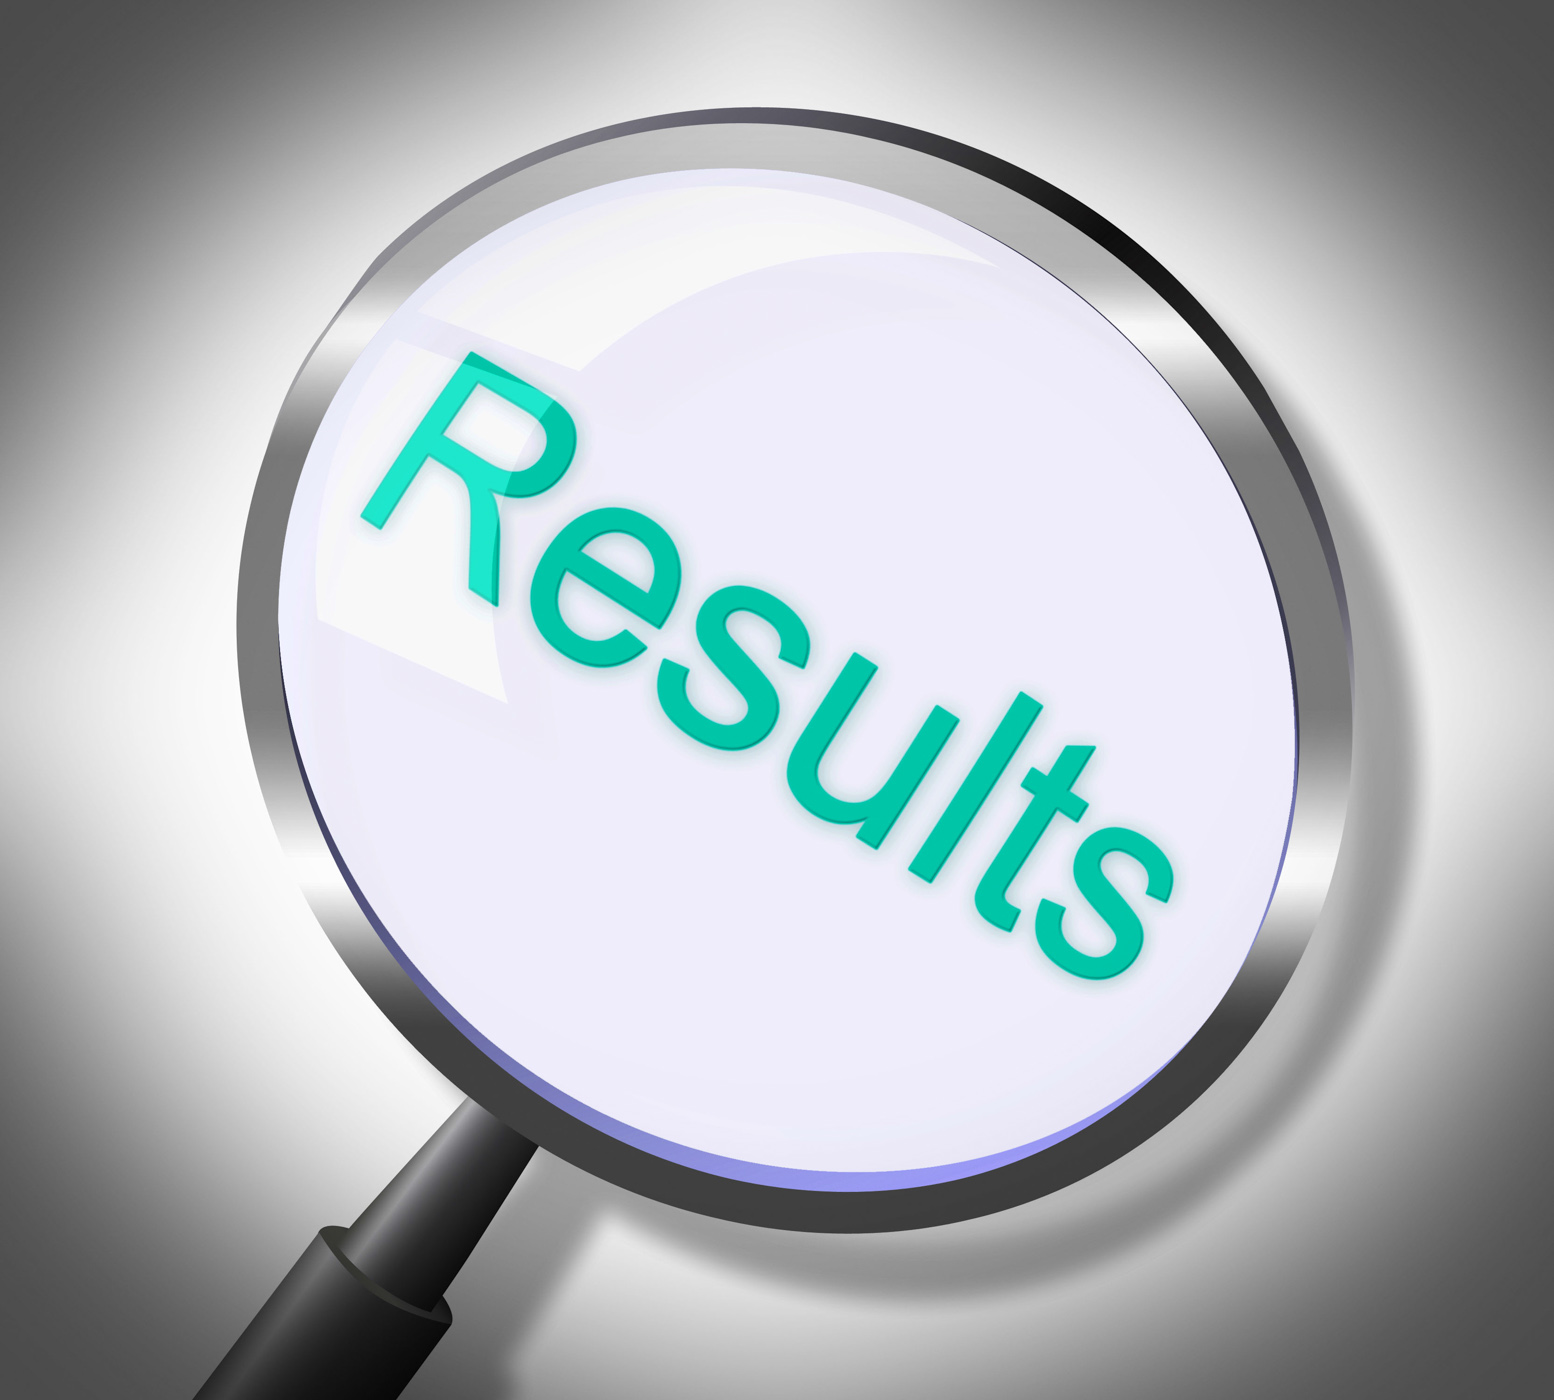 Magnifier Results Means Searches Success And Magnification, Achievement, Result, Sportresults, Searching, HQ Photo